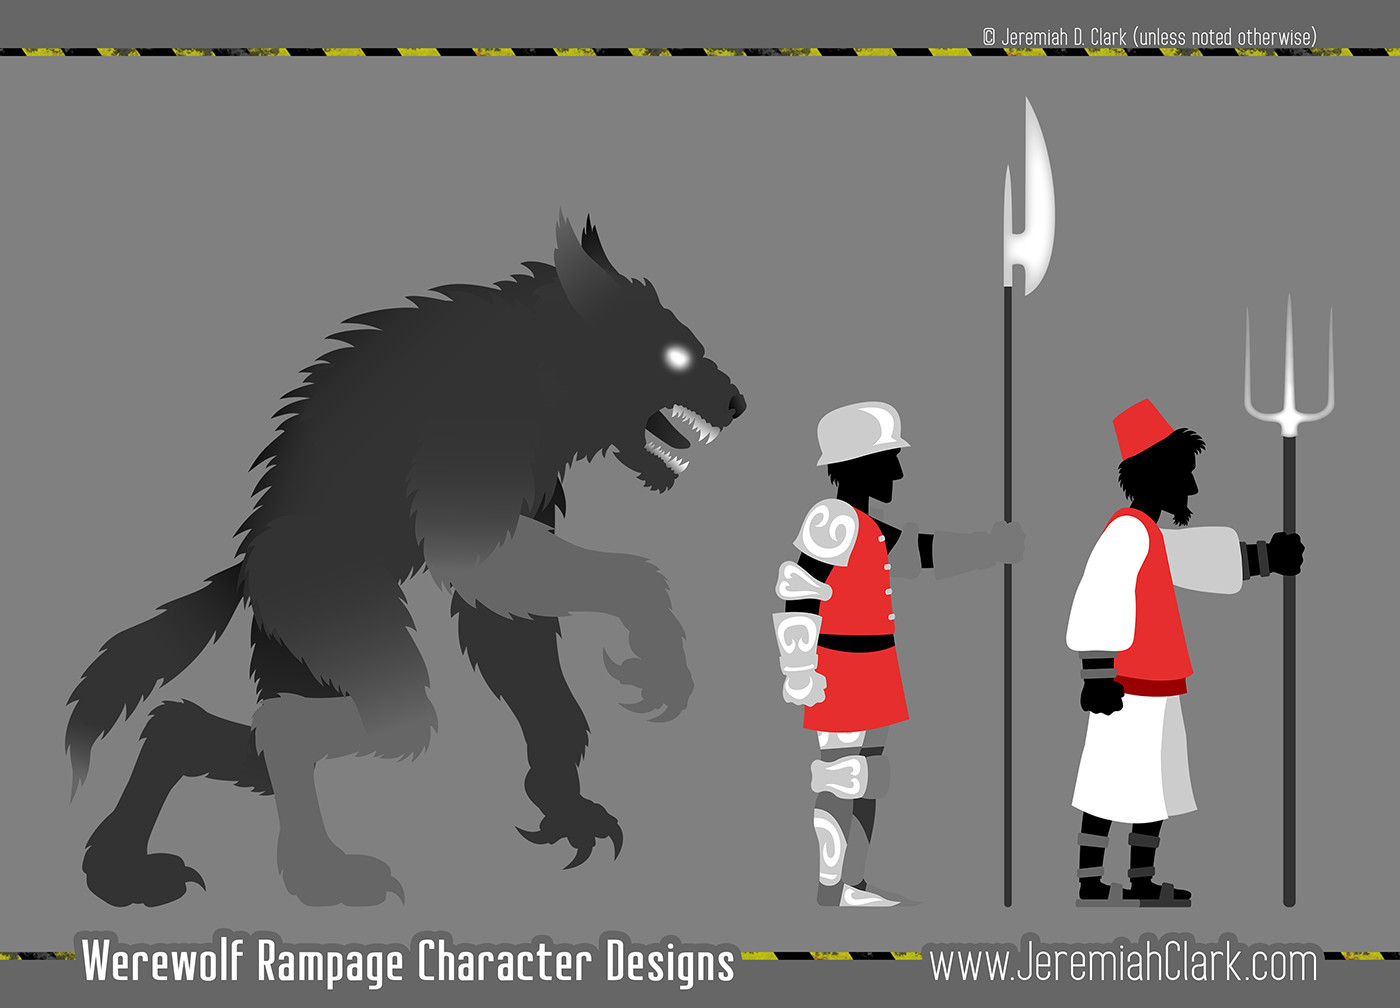 Characters - Original designs. Characters are fully articulated for puppet-style animation.